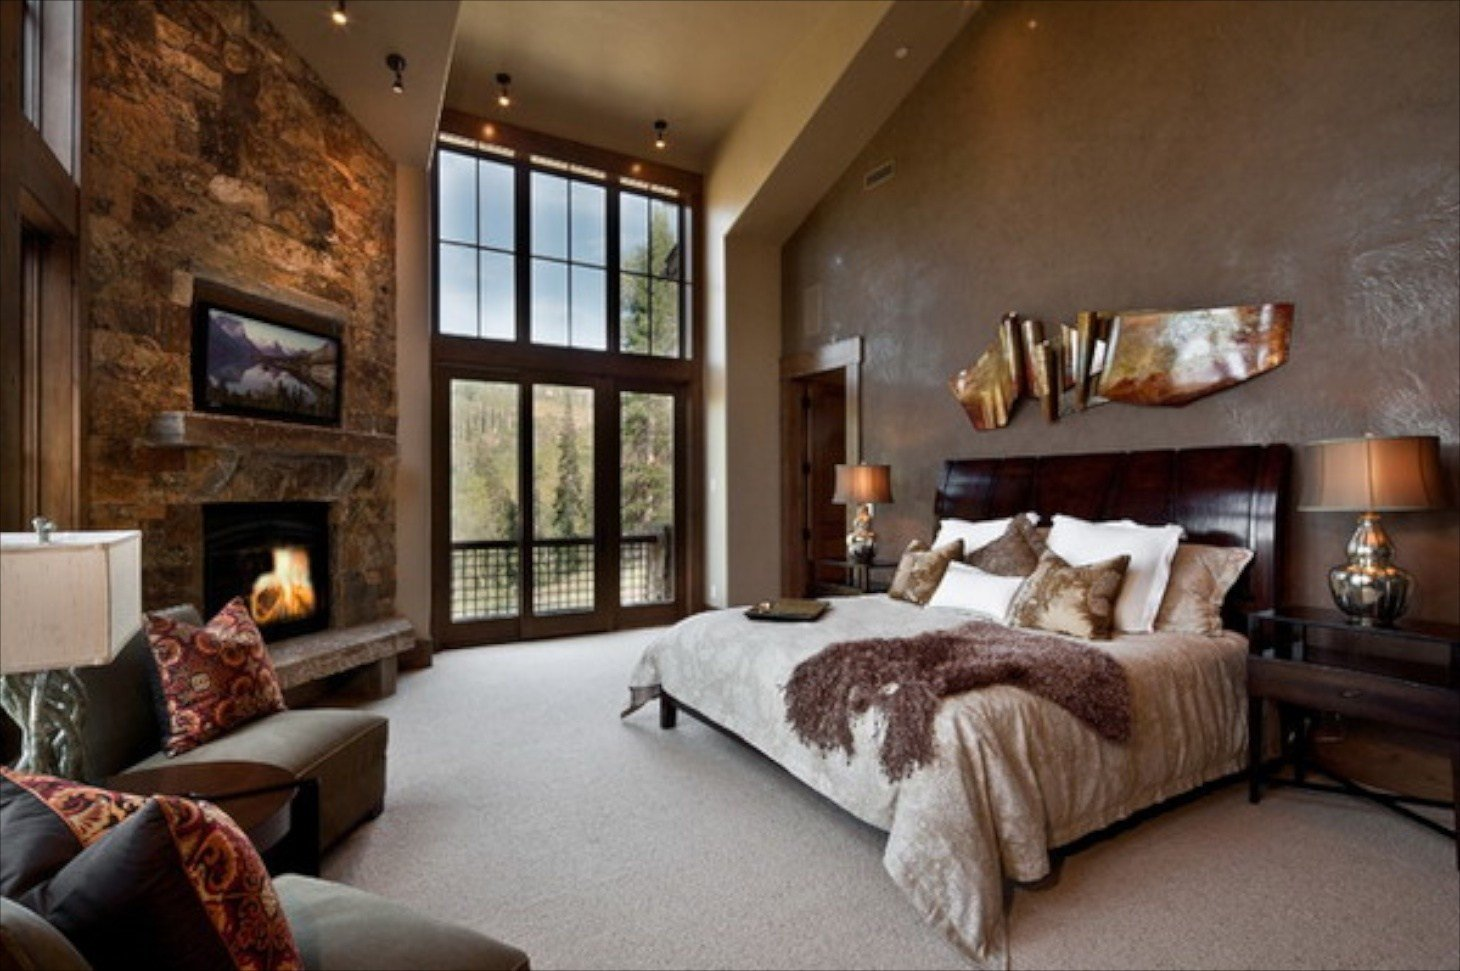 Best Decorating With Stone Inside The Home With Pictures